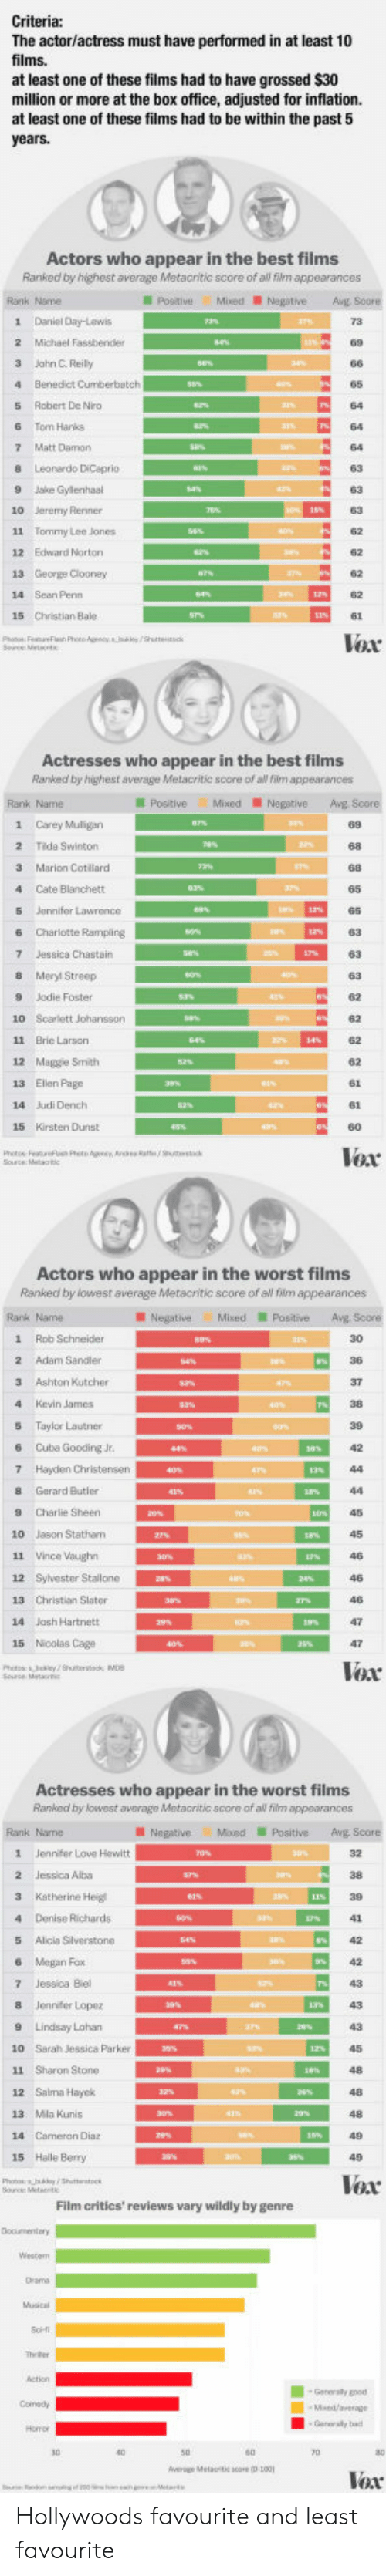 Kevin James: The actor/actress must have performed in at least 10  films.  at least one of these films had to have grossed $30  million or more at the box office, adjusted for inflation.  at least one of these films had to be within the past 5  Actor  s who appear in the best films  Ranked by highest average Metacritic score of all film appearances  Rank Name  PostiveMixed NegativeAg Score  1 Daniel Day-Lewis  2 Michael Fassbender  3 Jahn C Reily  4 Benedict Cunberbatch  5 Robert De Niro  6 Tom Hanks  7 Matt Damon  8 Leonardo DiCeprio  9 Jake Gylenhaal  10 Jeremy Renner  11 Tommy Lee Jones  12 Edward Norton  65  62  14 Sean Penn  15 Christian Bale  Vox  Actresses who appear in the best films  Ranked by highest average Metacritic score of al fiim appearances  PositiveMixedNegative Avg Score  1 Carey Muligan  89  2 Tida Swinton  3 Marion Cotllard  4 Cate Blanchett  5 Jennifer Lawrence  6 Charlotte Rampling  63  8 Meryl Streep  9 Jodie Foster  10 Scarlett Johansson  11 Brie Larson  12 Maggie Smith  13 Ellen Page  14 Judi Dench  15 Kirsten Dunst  62  62  62  62  6  Voar  Actors who appear in the worst films  Ranked by lowest average Metacntic score of al fim appearances  Rank Name  Negative MixedPositive Avg Score  1 Rob Schneider  2 Adam Sandler  3 Ashton Kutcher  4 Kevin James  5 Taylor Lautner  6 Cuba Gooding Jr.  7 Hayden Christensen  8 Gerard Butler  30  9 Charlie Sheen ESI,  45  10 Jason Statham  12 Syvester Stallone  13 Christian Slater  14 Jash Hartnett  15 Nicolas Cage  Vox  Actresses who appear in the worst films  Ranked by lowest average Metacritic score of all film appearances  Rank Name  NegativeMxedPositiveAvE Score  1  Jennifer Love Hewitt  2 Jessica Alba  4 Denise Richards  5 Alica Slverstone  6 Megan Fox  7 Jessica Biel  8 Jennifer Lopez  9 Lindsay Lohan  10 Sarah Jessica Parker  11 Sharon Stone  12 Salma Hayck  13 Mla Kunis  14 Cameron Diaz  15 Halle Berry  43  48  48  Voar  Film critics' reviews vary wildly by genre  Generaly b  verage Melacritic save (D-100 Hollywoods favourite and least favourite